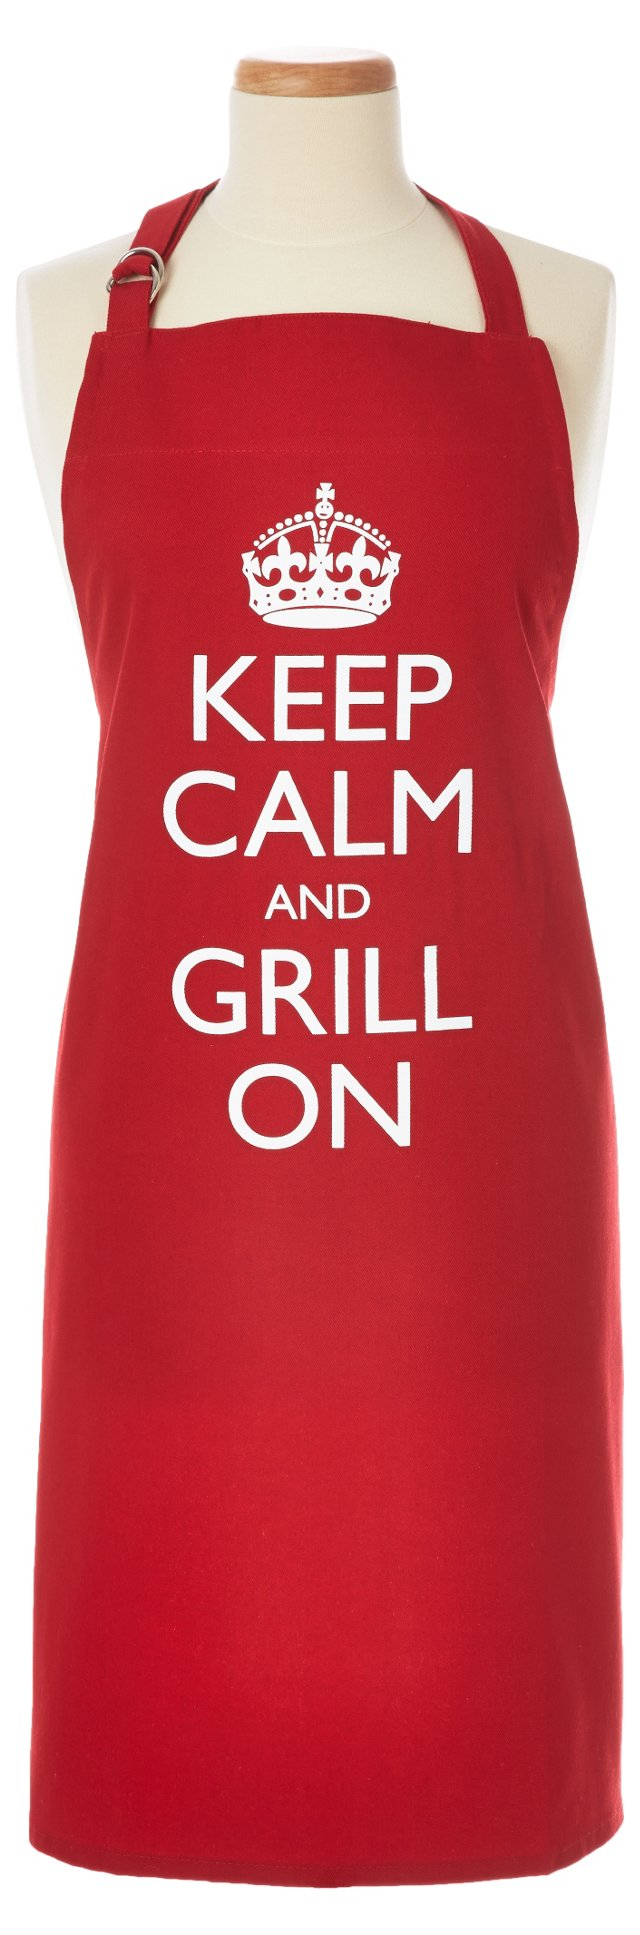 Keep Calm & Grill On Apron